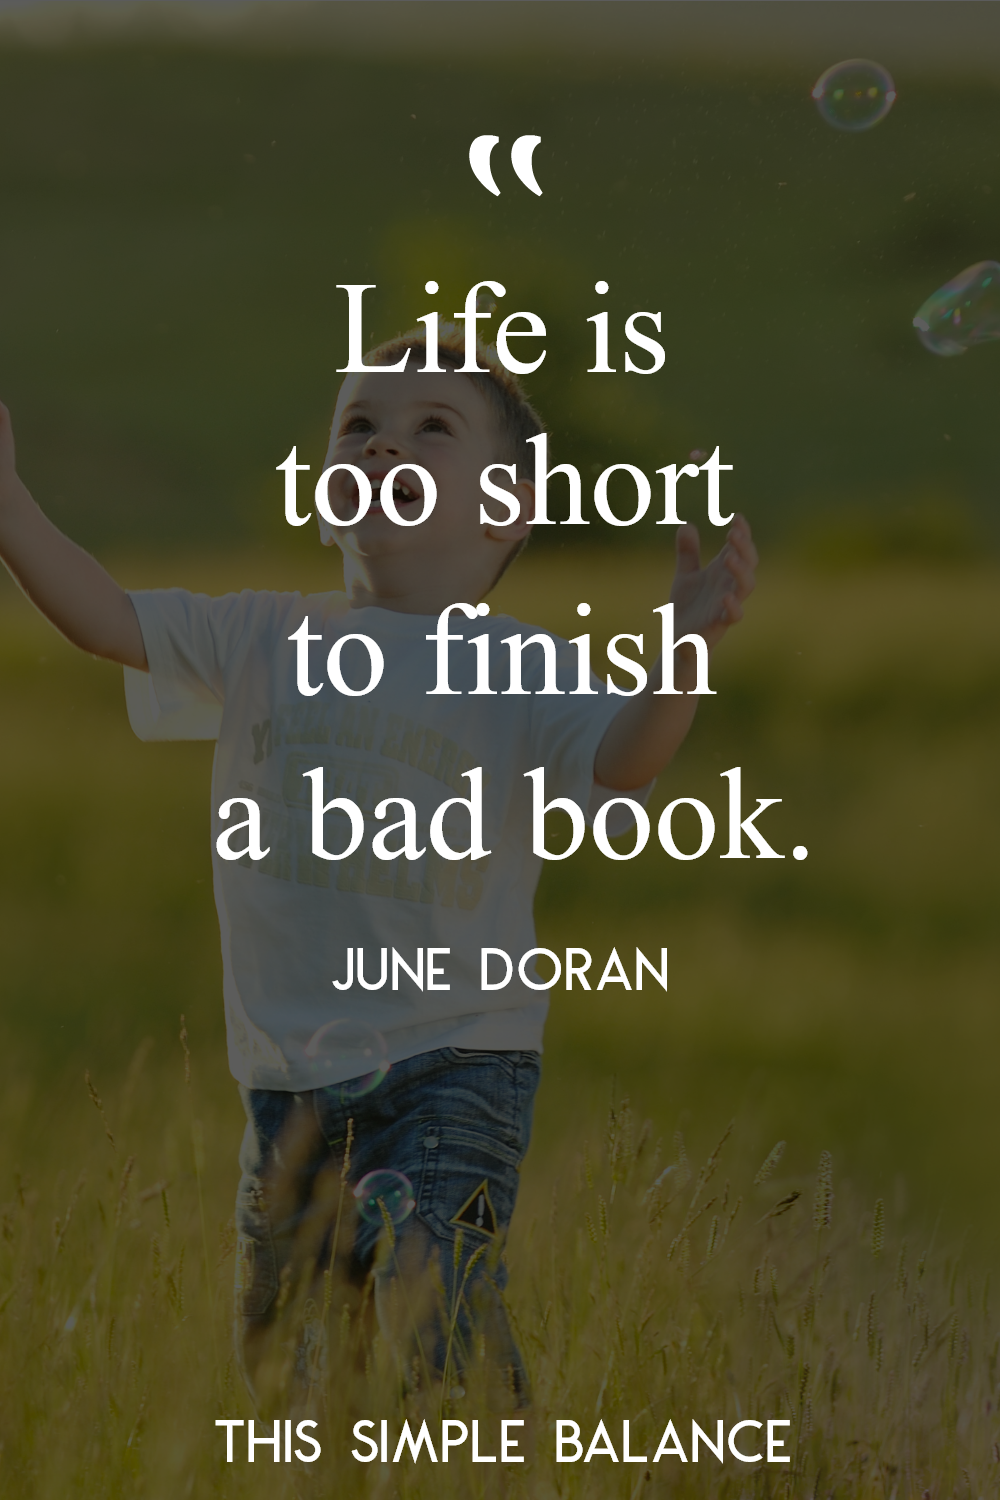 """Life is too short to finish a bad book."" via @thsimplebalance"